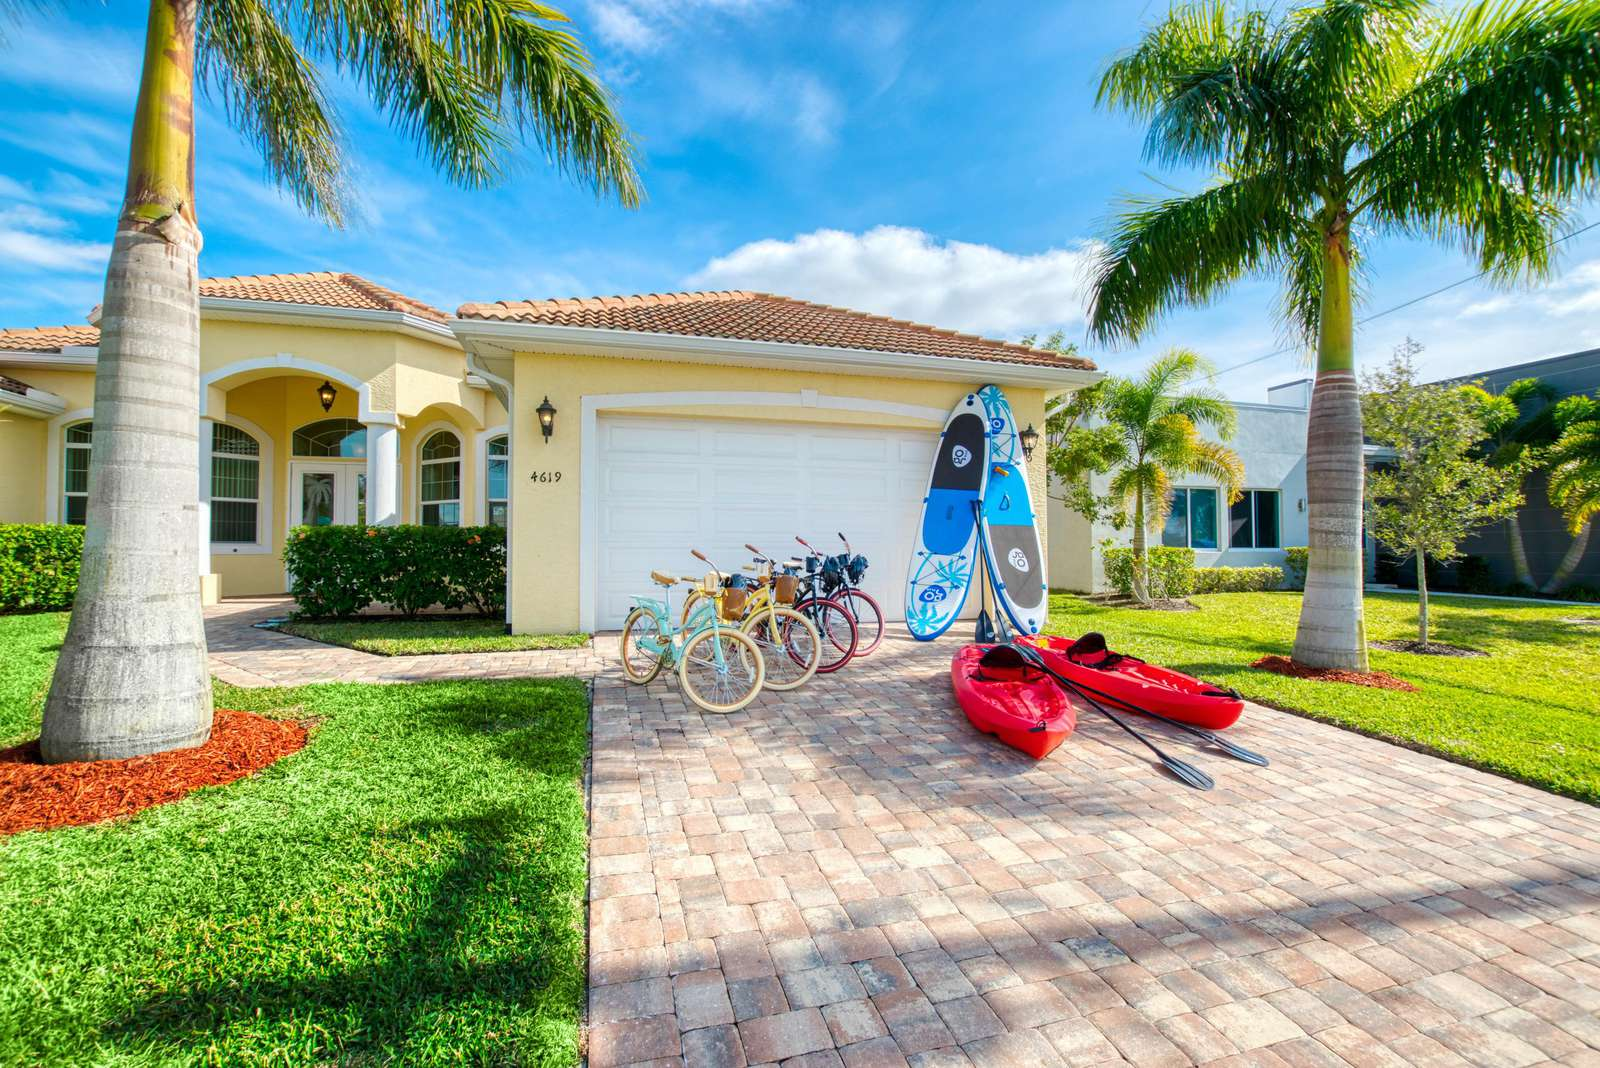 Wischis Florida Home - Summer Paradise